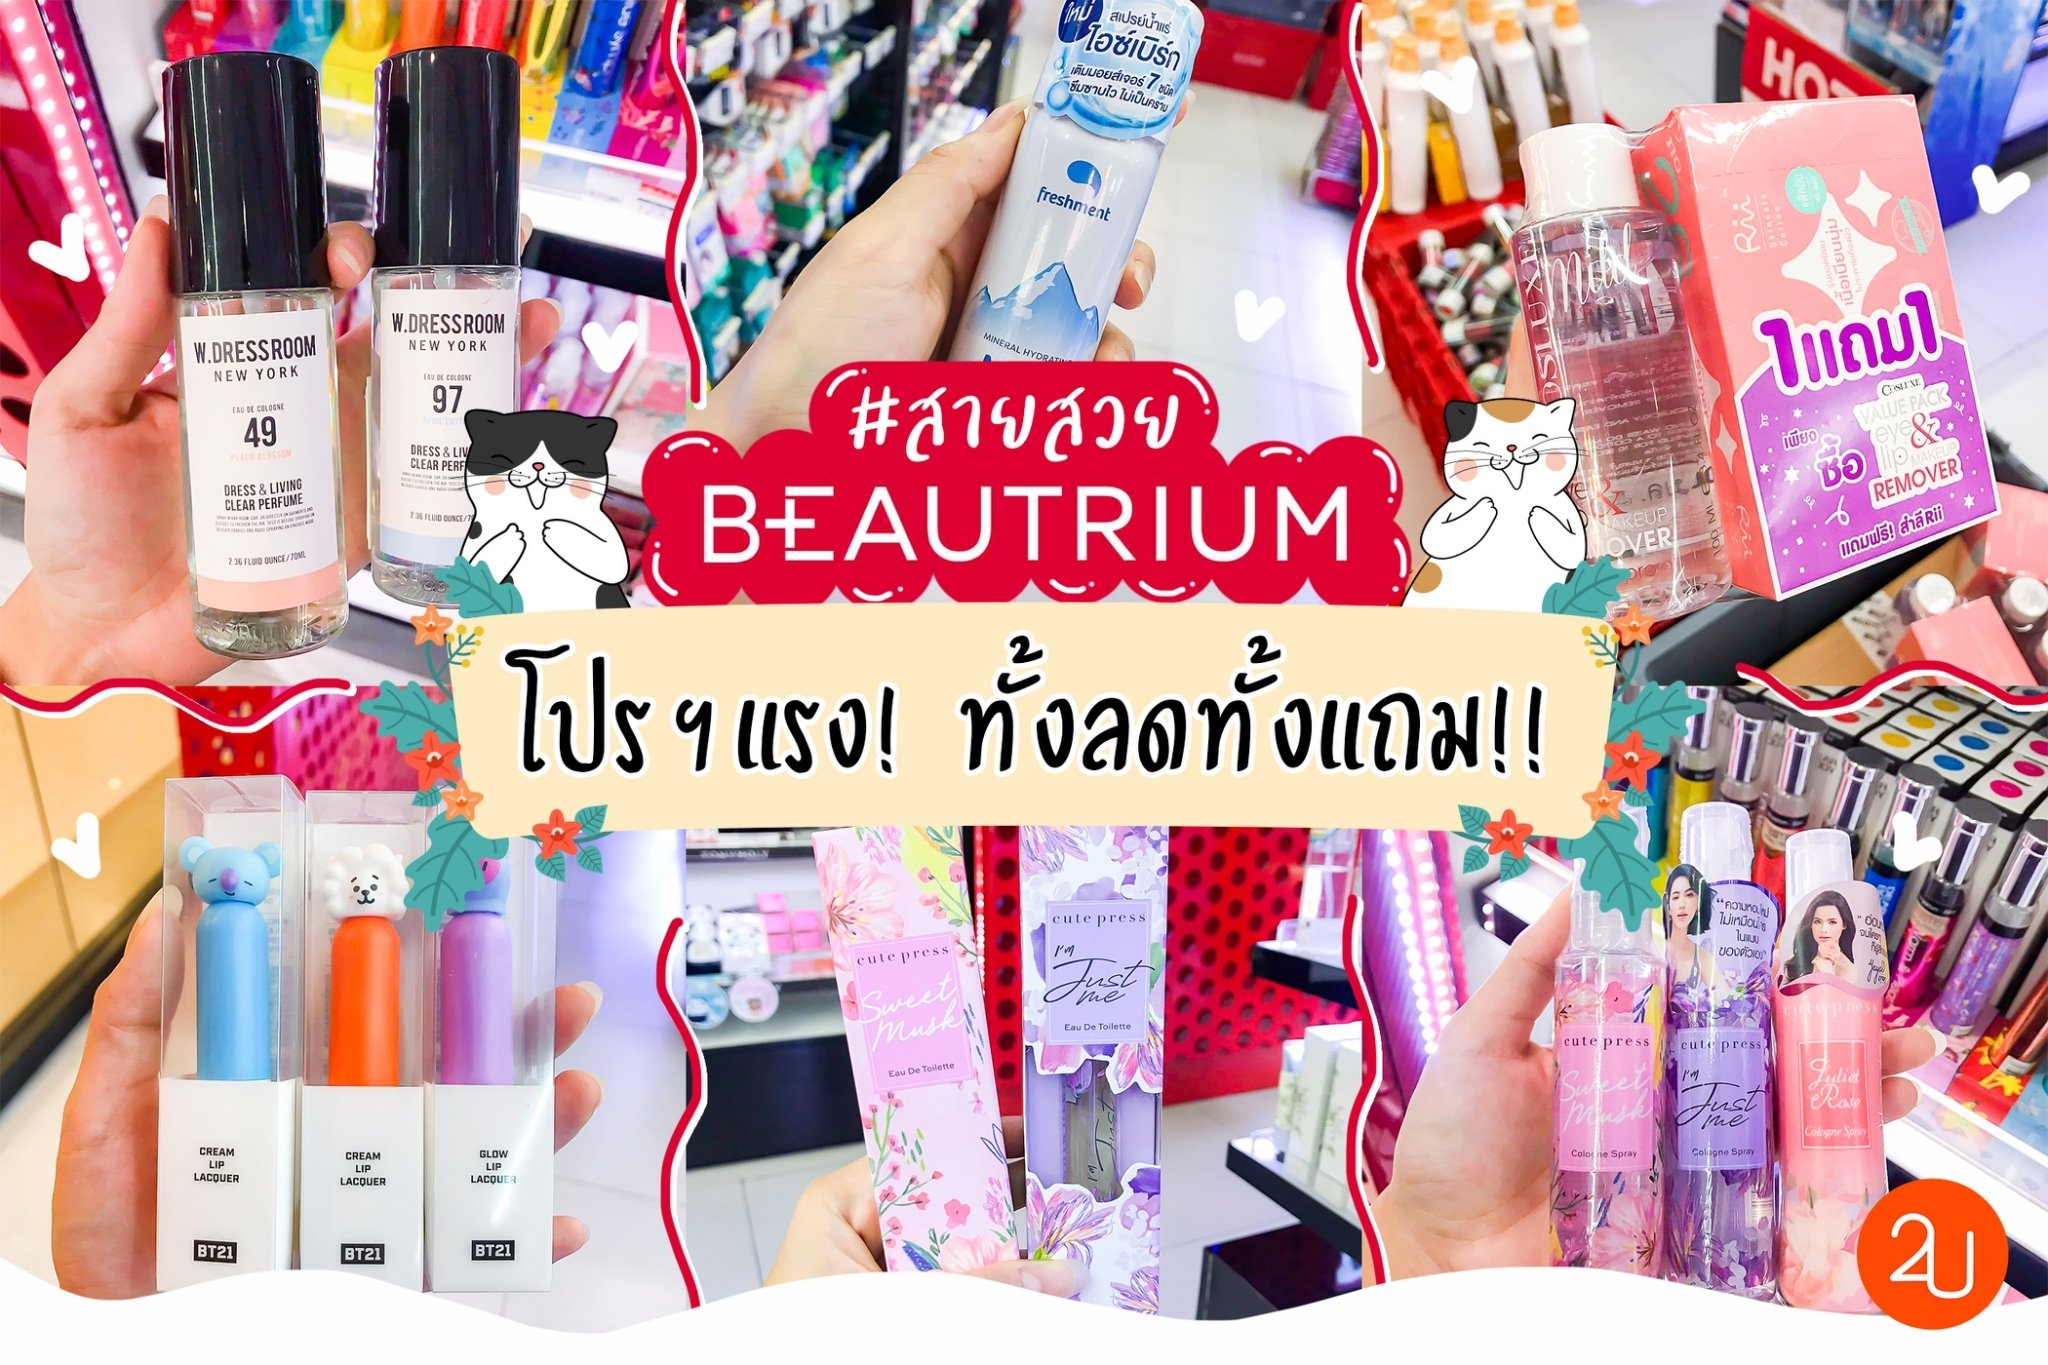 Promotion BEAUTRIUM Sale and buy 1 get free 1